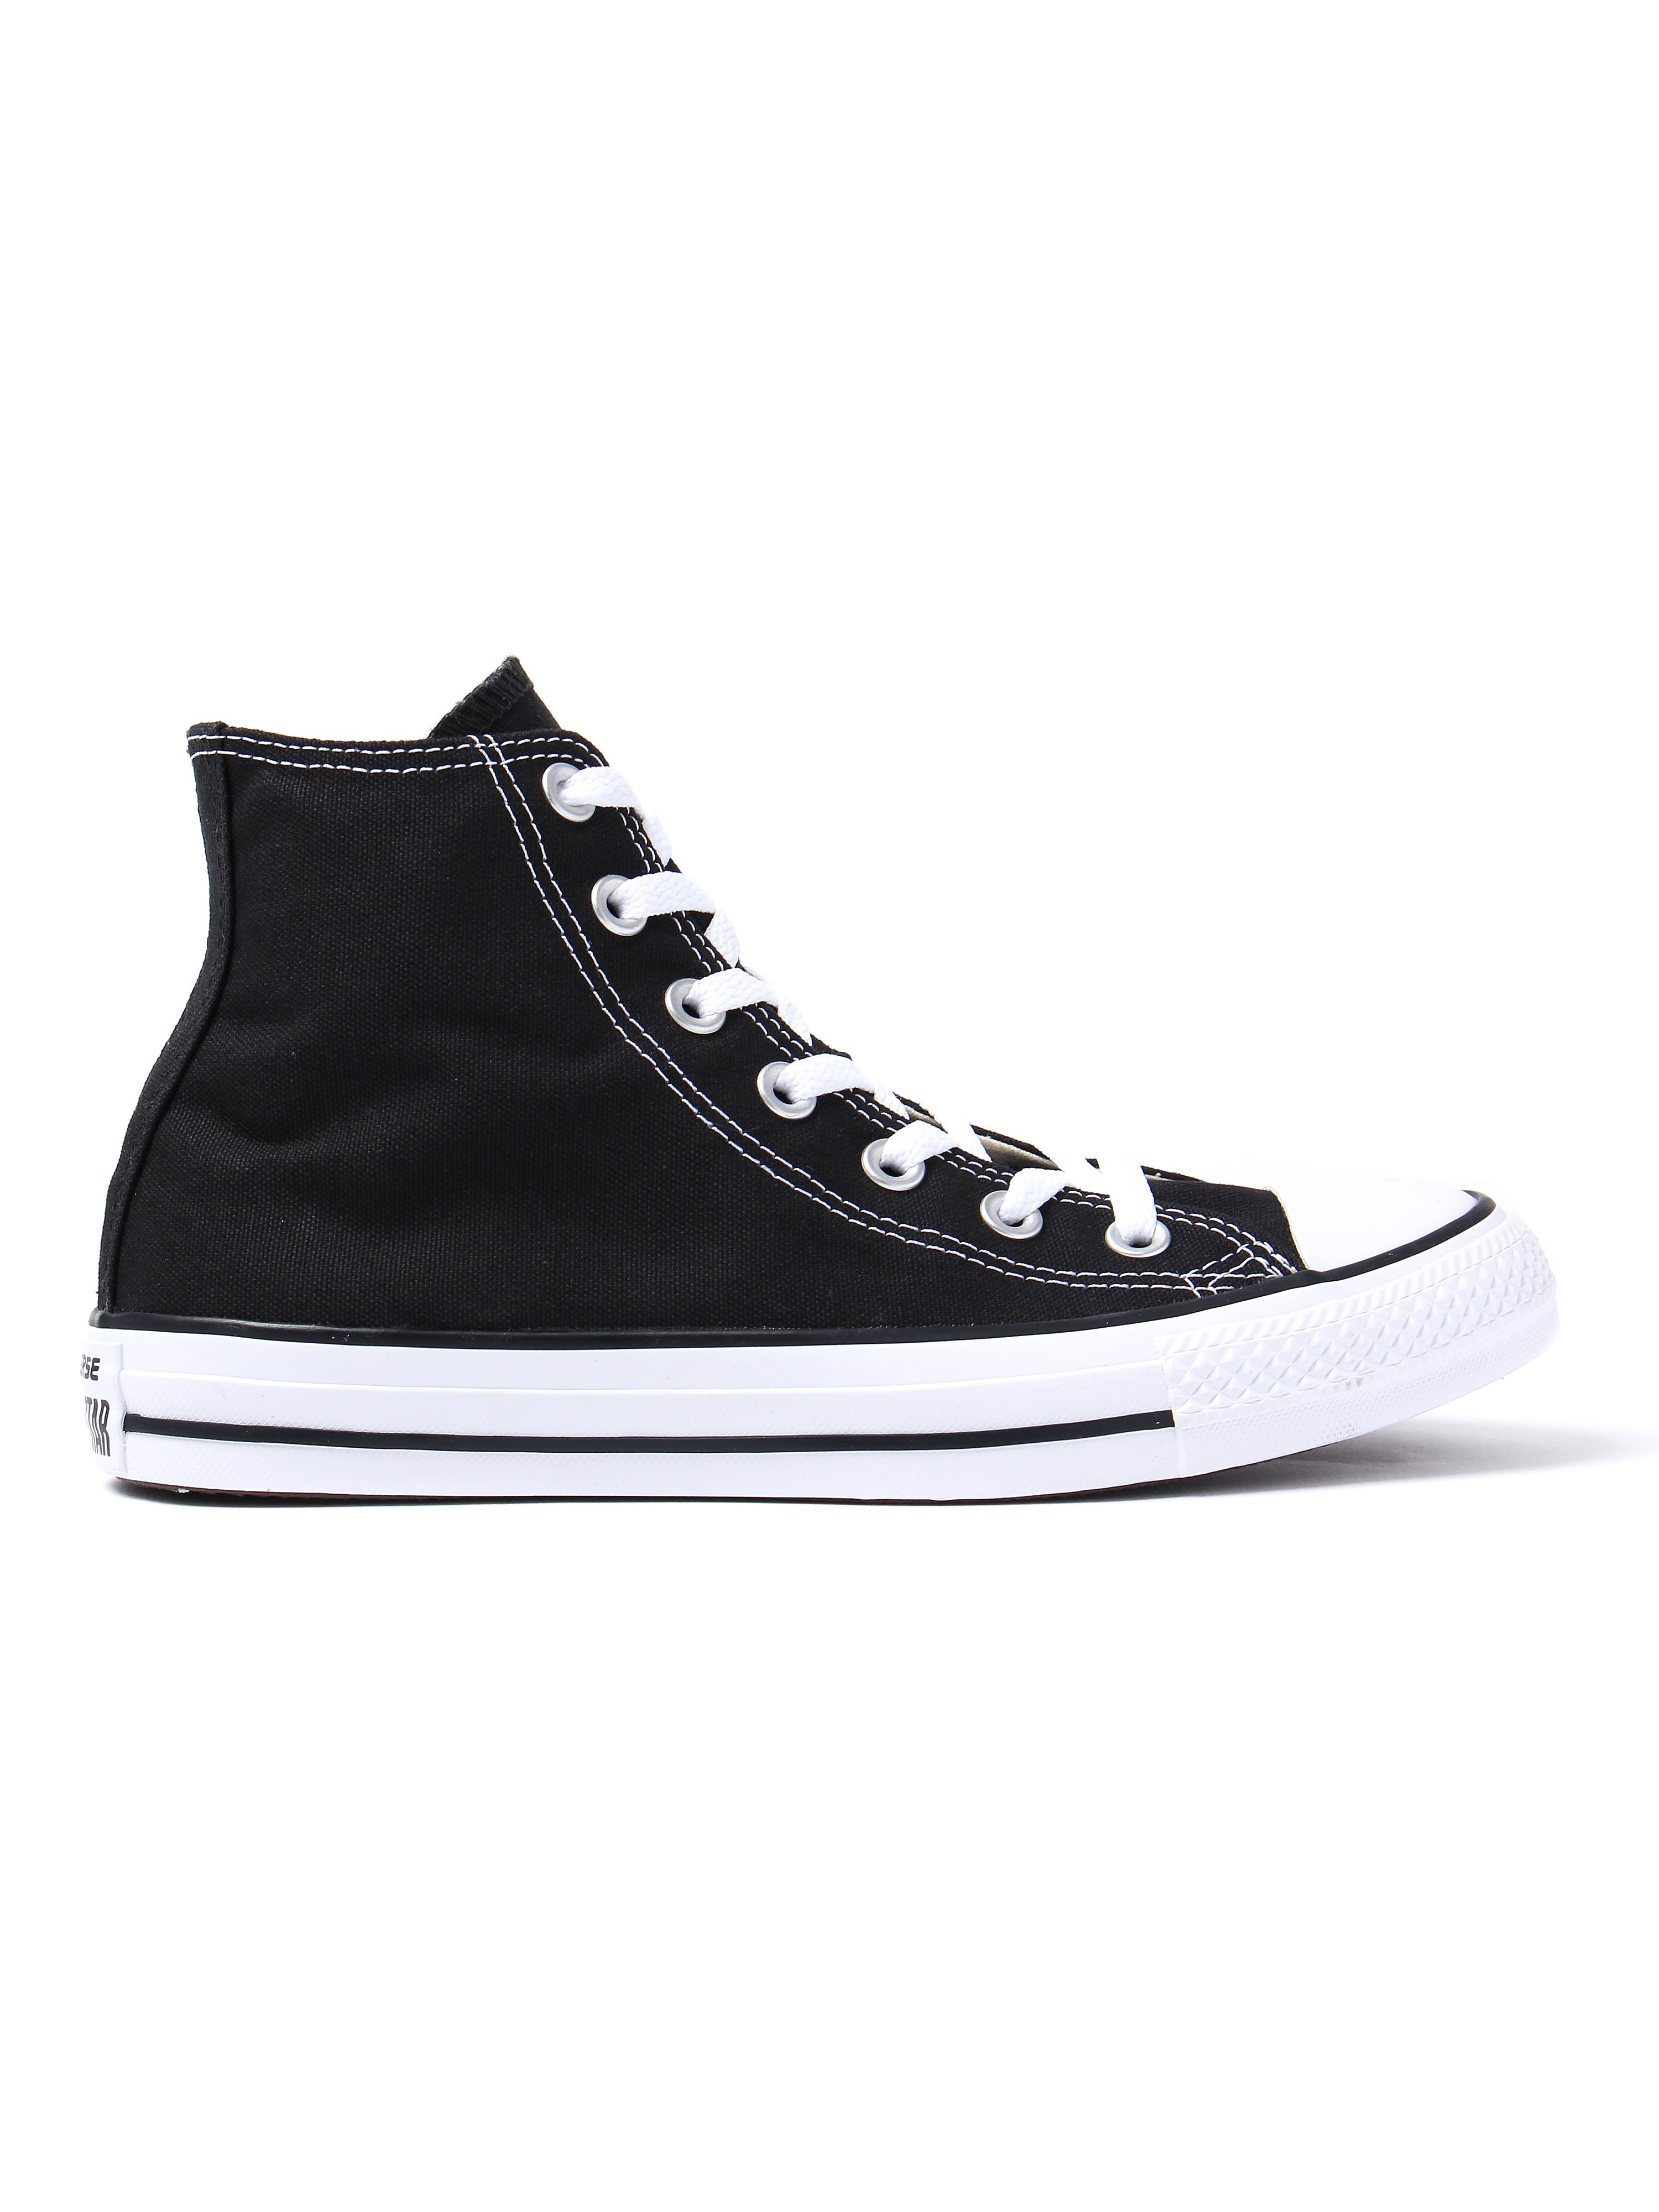 Converse Men's Chuck Taylor All Star HI Trainers - Black